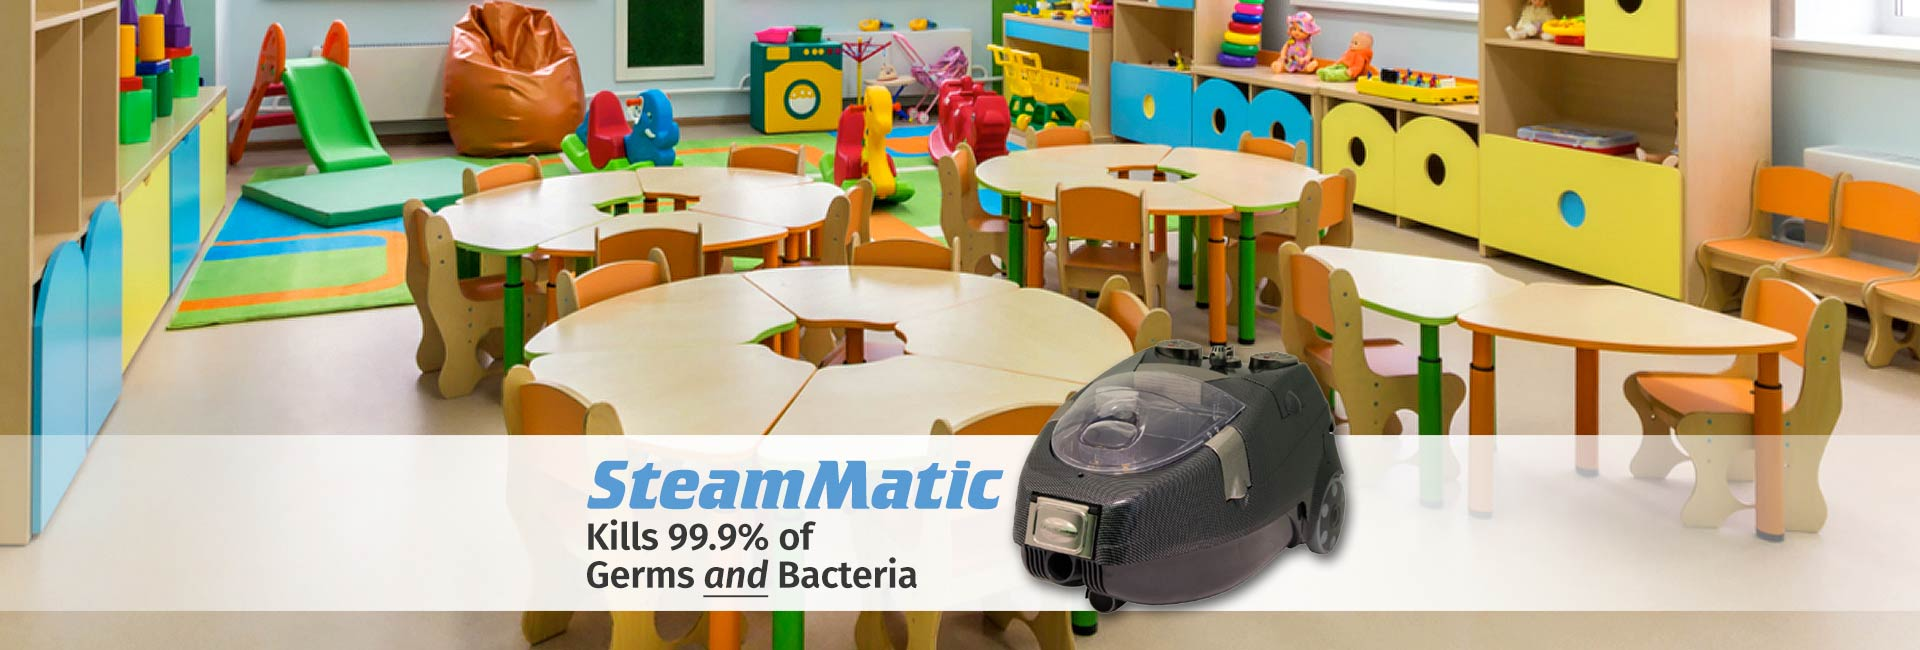 steammatic_pro_cleaner